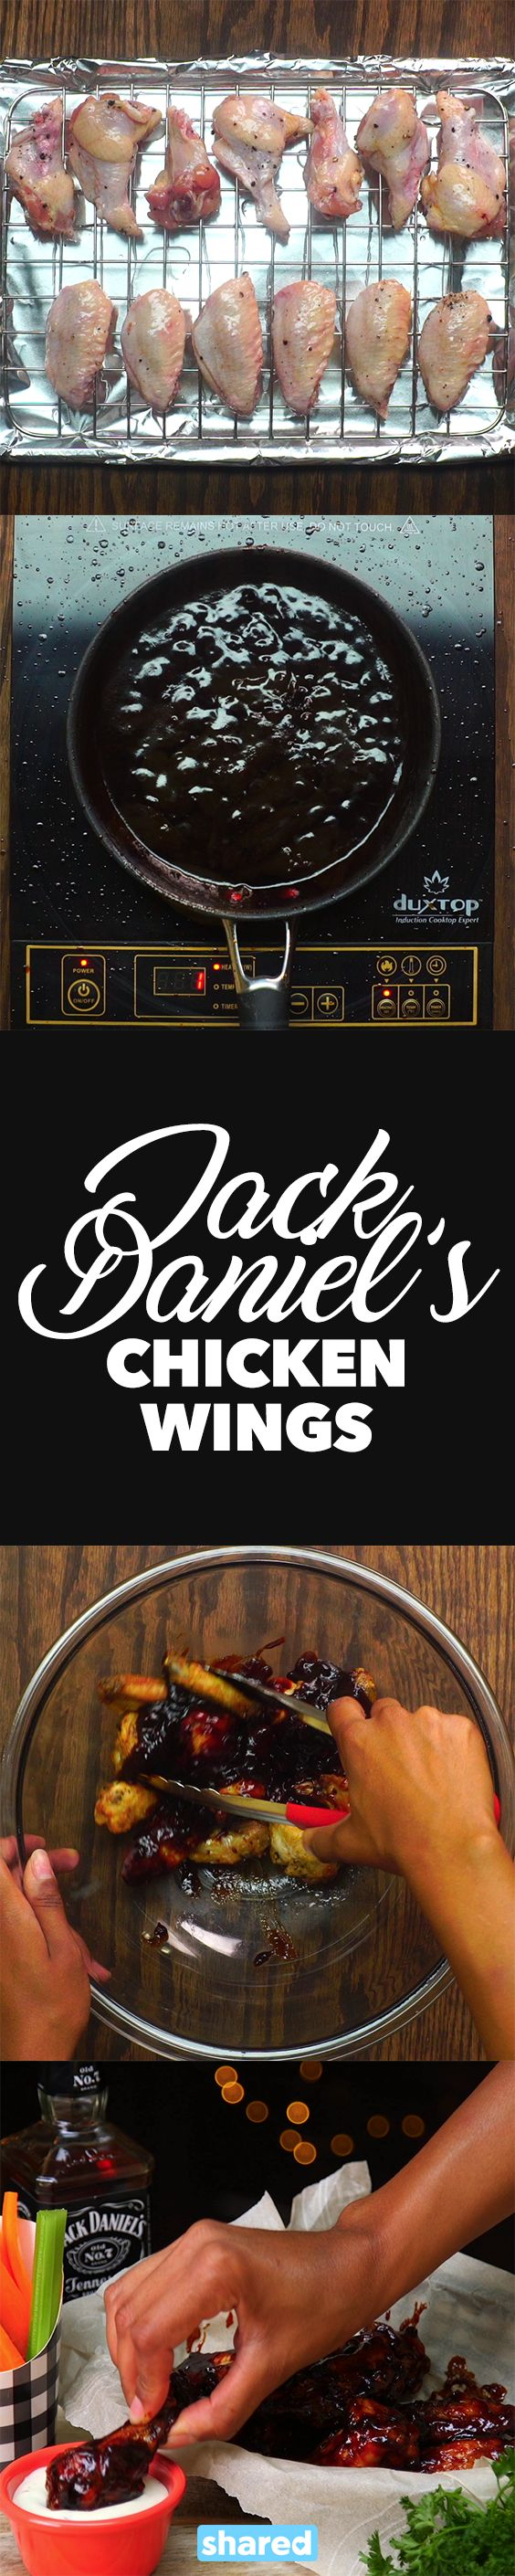 Jack Daniel's Chicken Wings